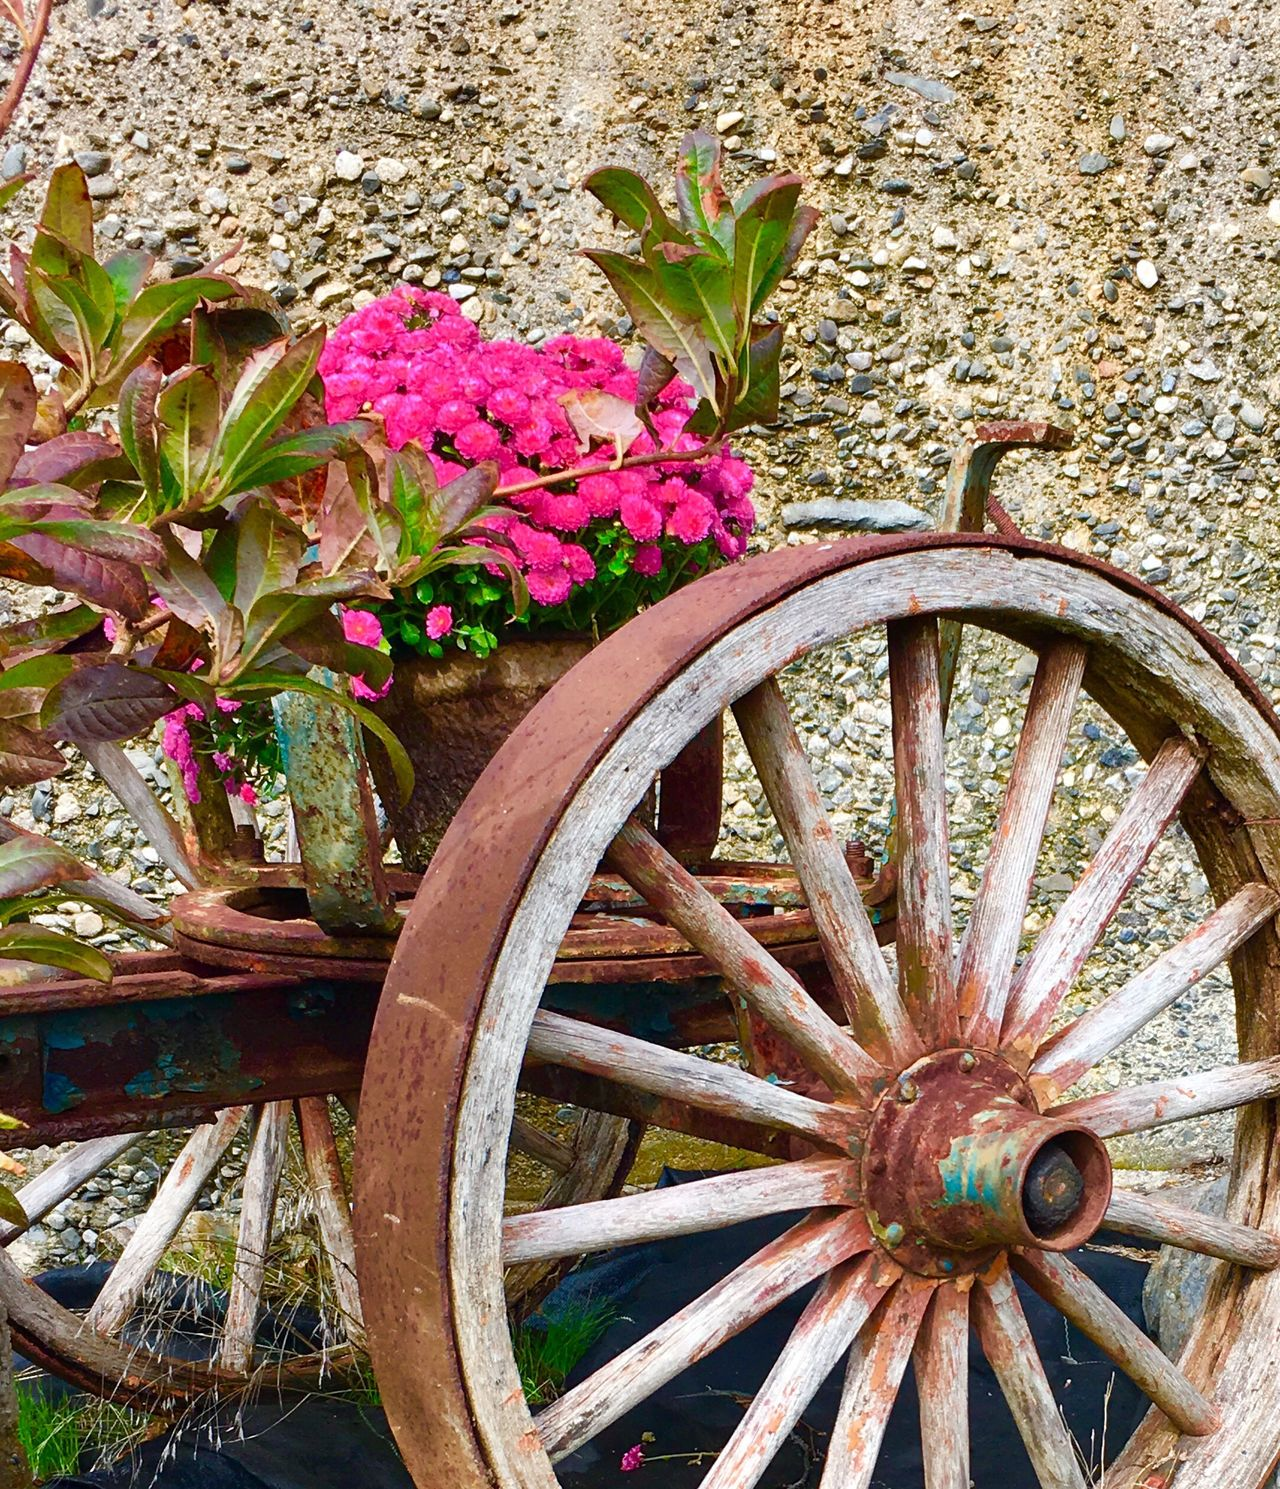 Wheel Wall - Building Feature Transportation Flower Leaf Run-down Old Obsolete Plant The Past Land Vehicle Mode Of Transport Deterioration Outdoors Freshness Damaged Growth Day Nature No People